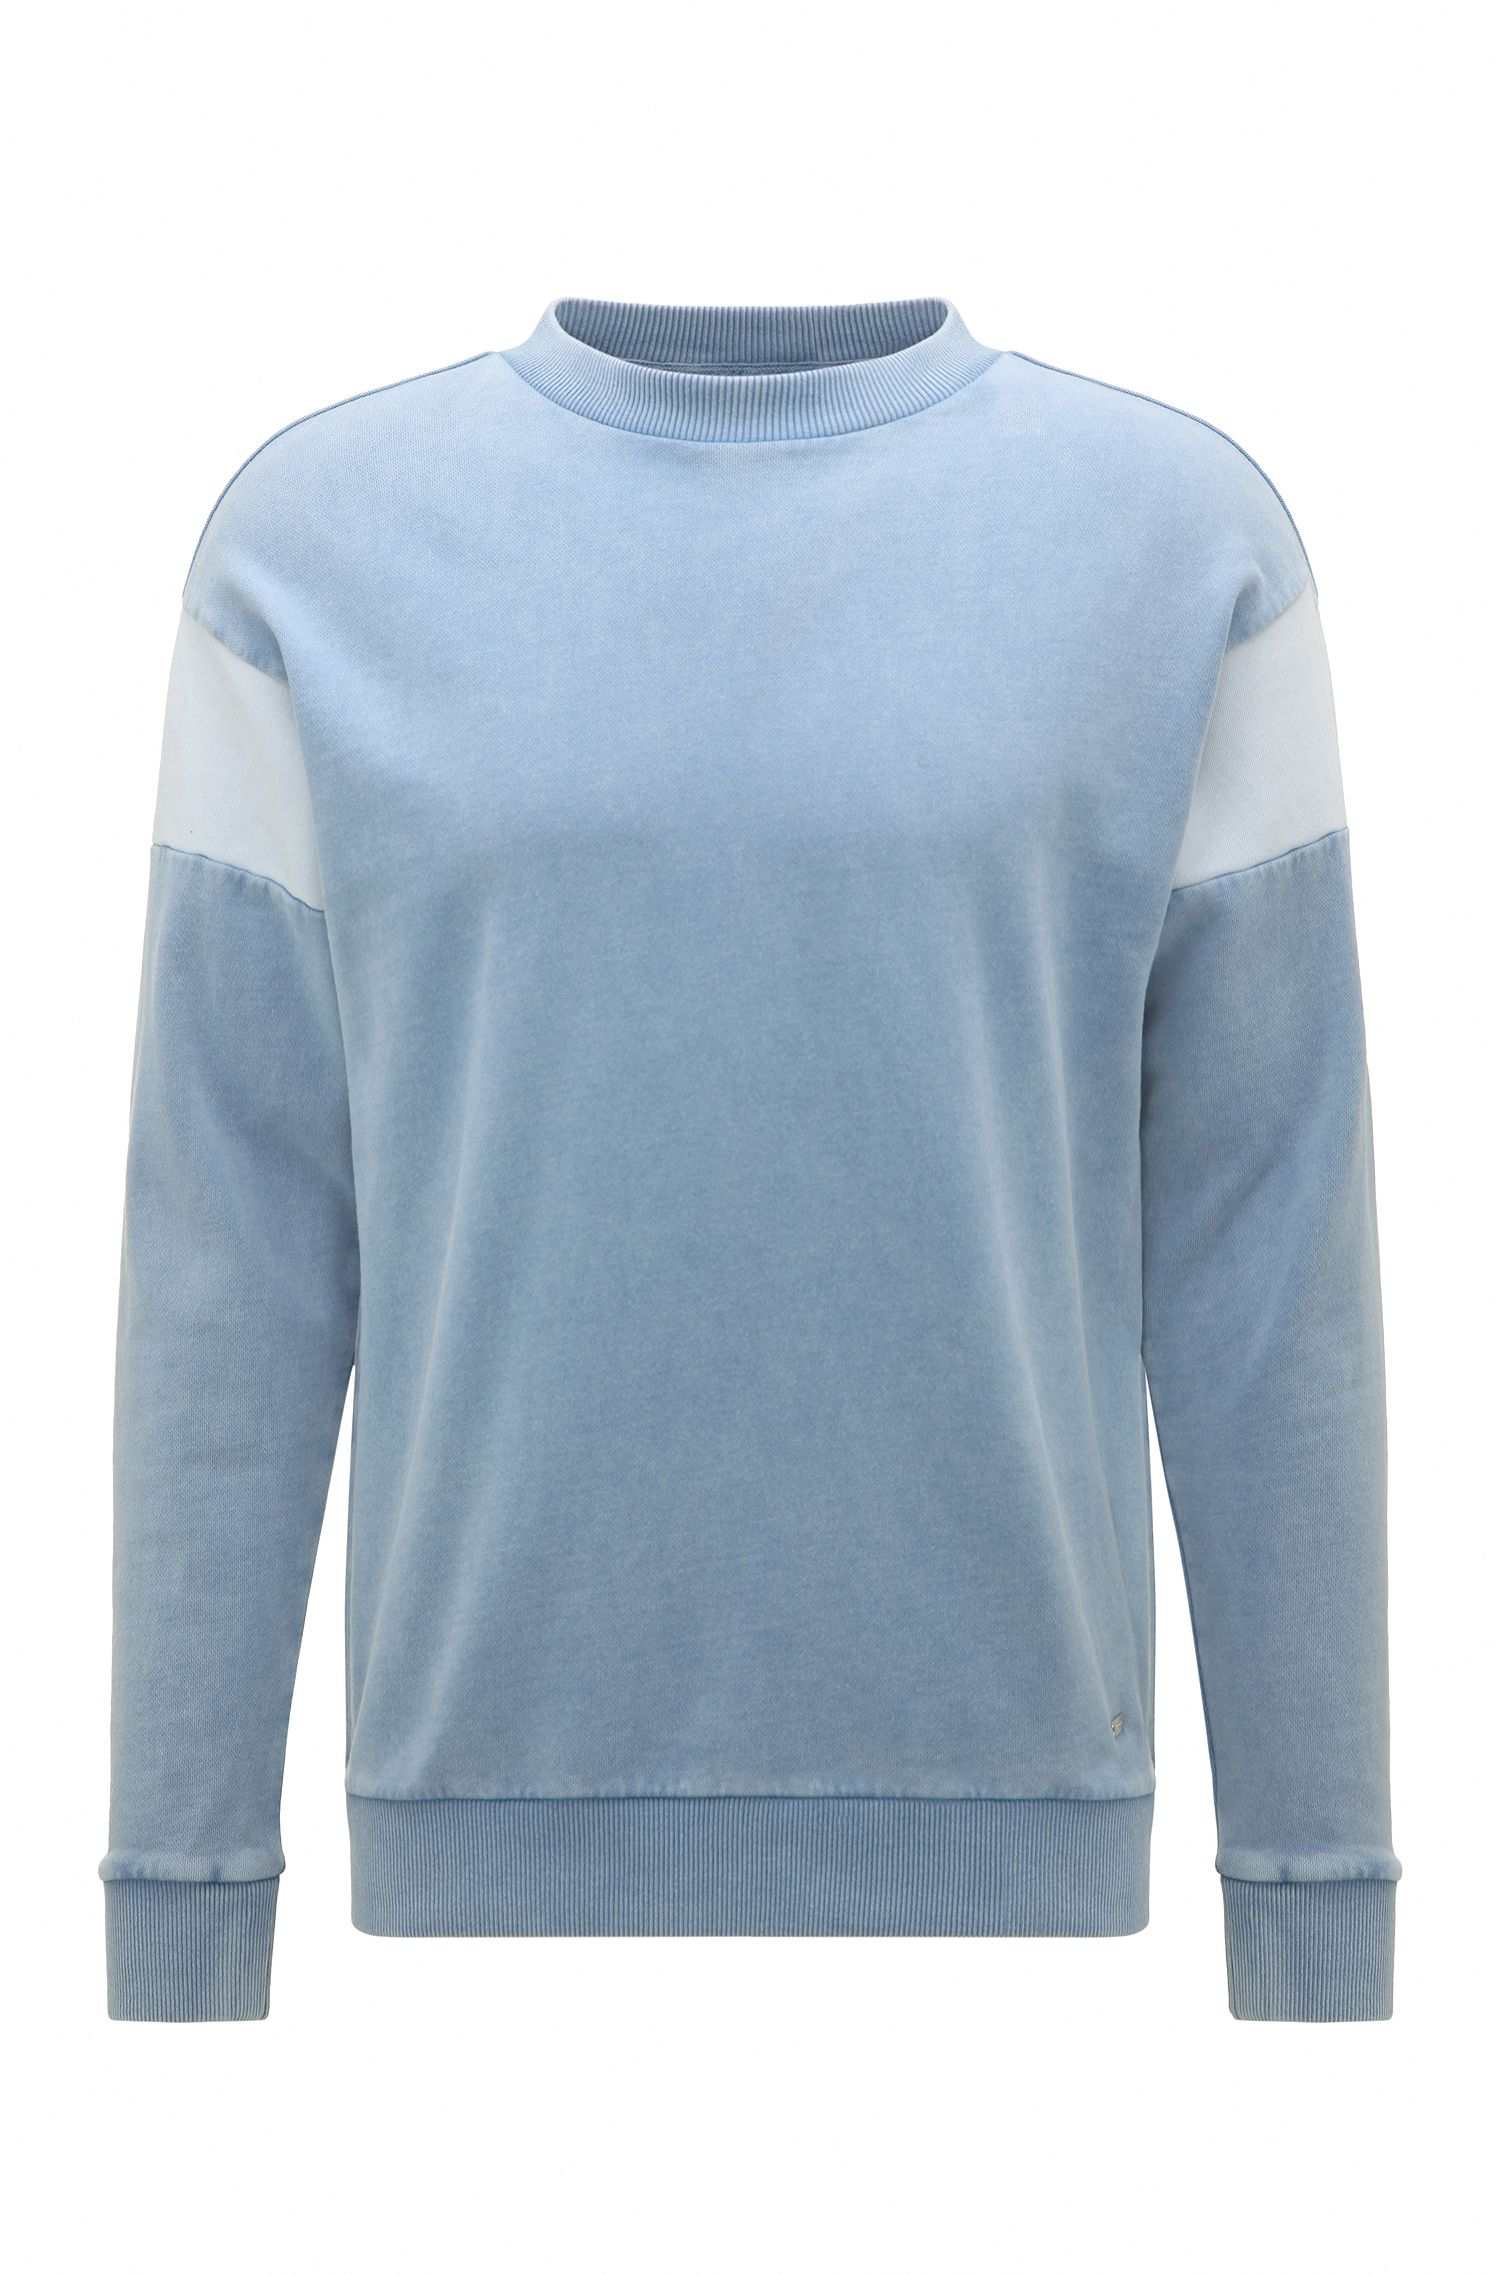 Regular-fit sweatshirt van katoen in washed out-look: 'Wham'